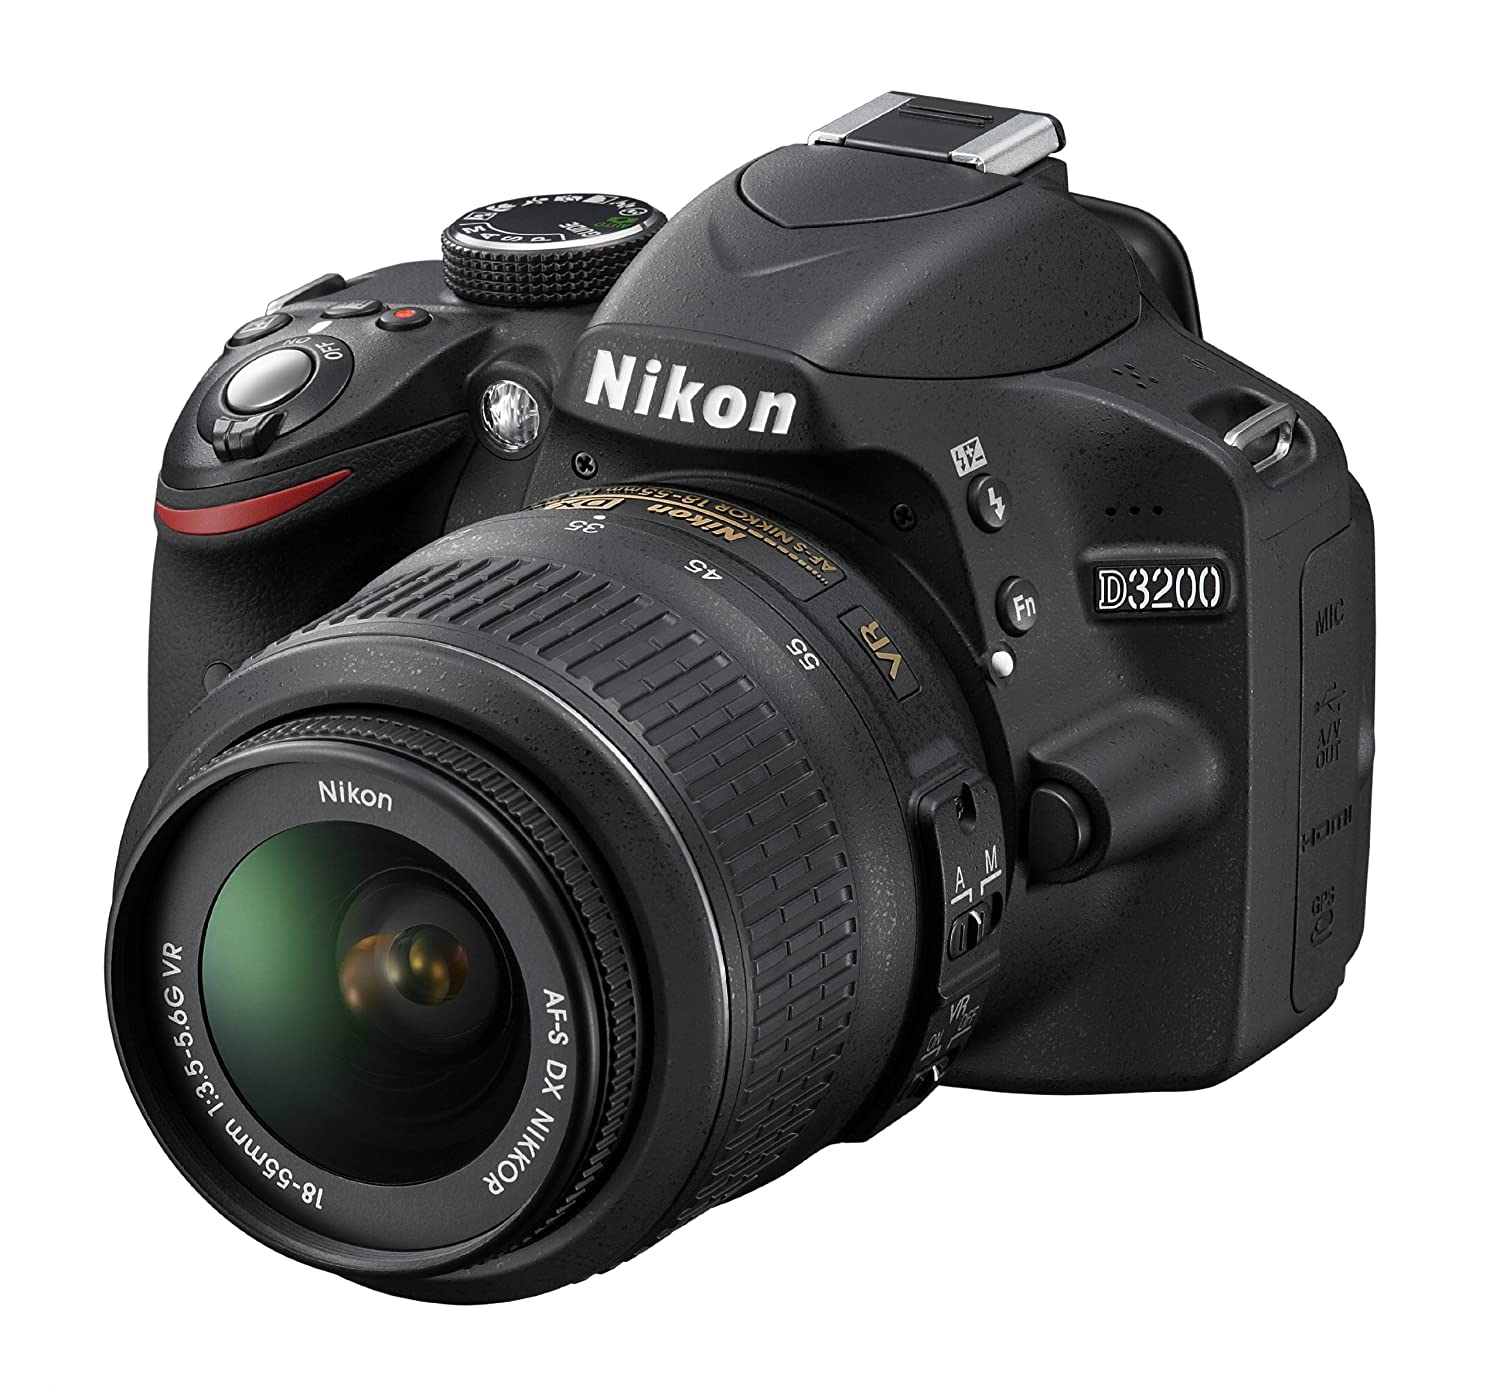 Nikon D3200 24.2 MP  Digital SLR